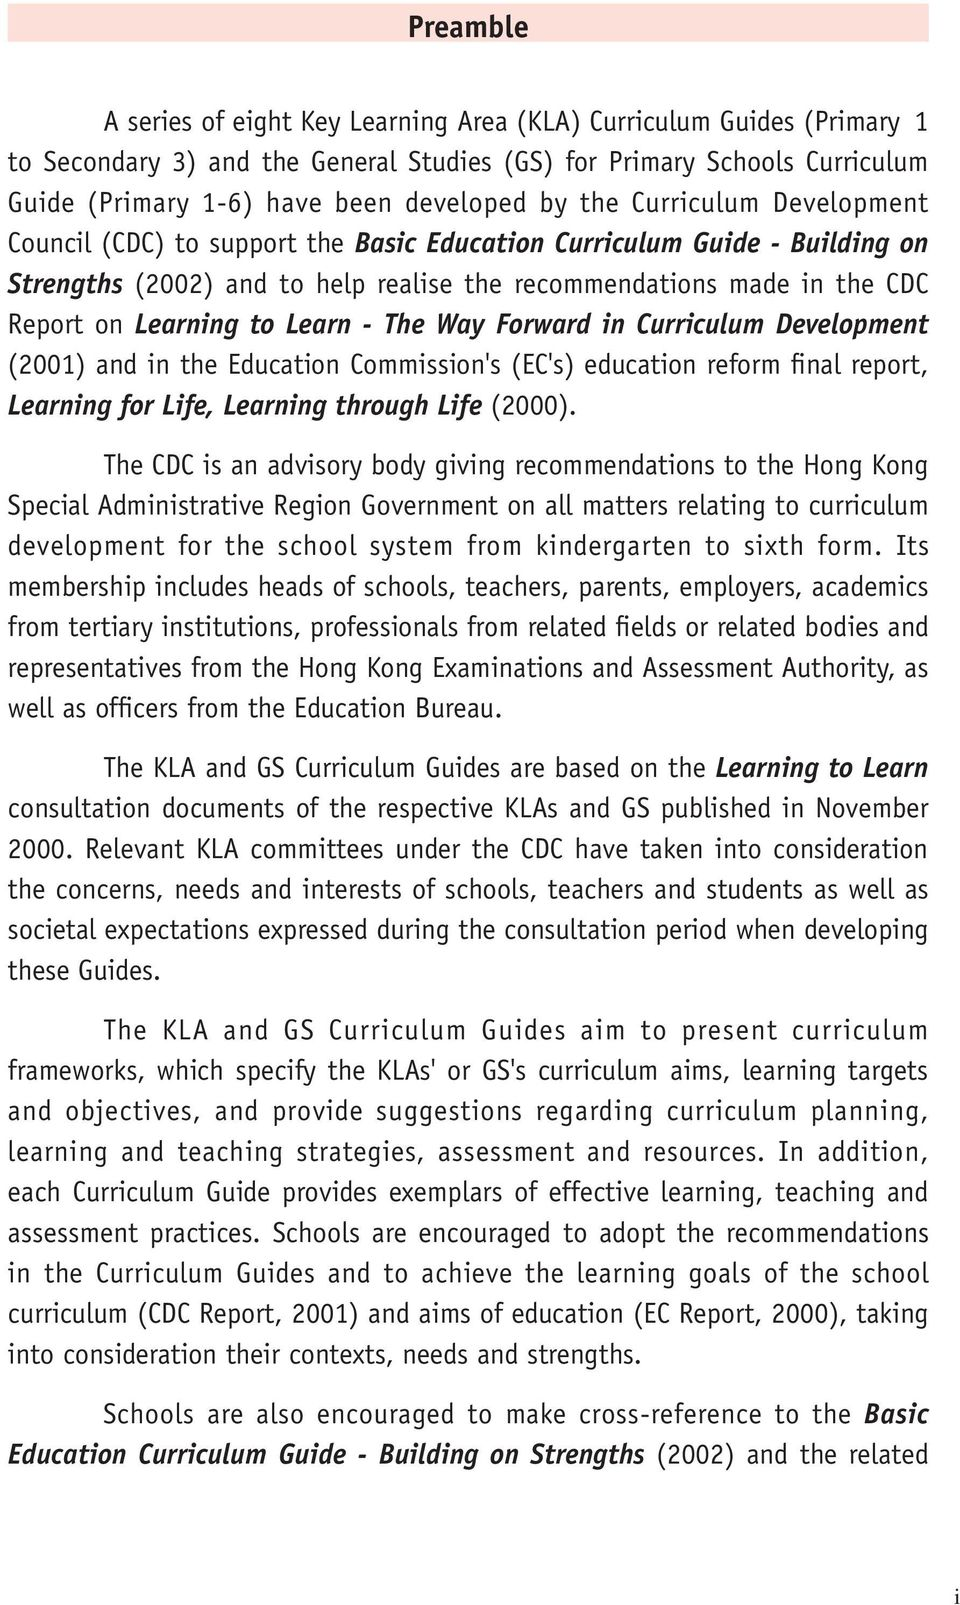 Learn - The Way Forward in Curriculum Development (2001) and in the Education Commission's (EC's) education reform final report, Learning for Life, Learning through Life (2000).